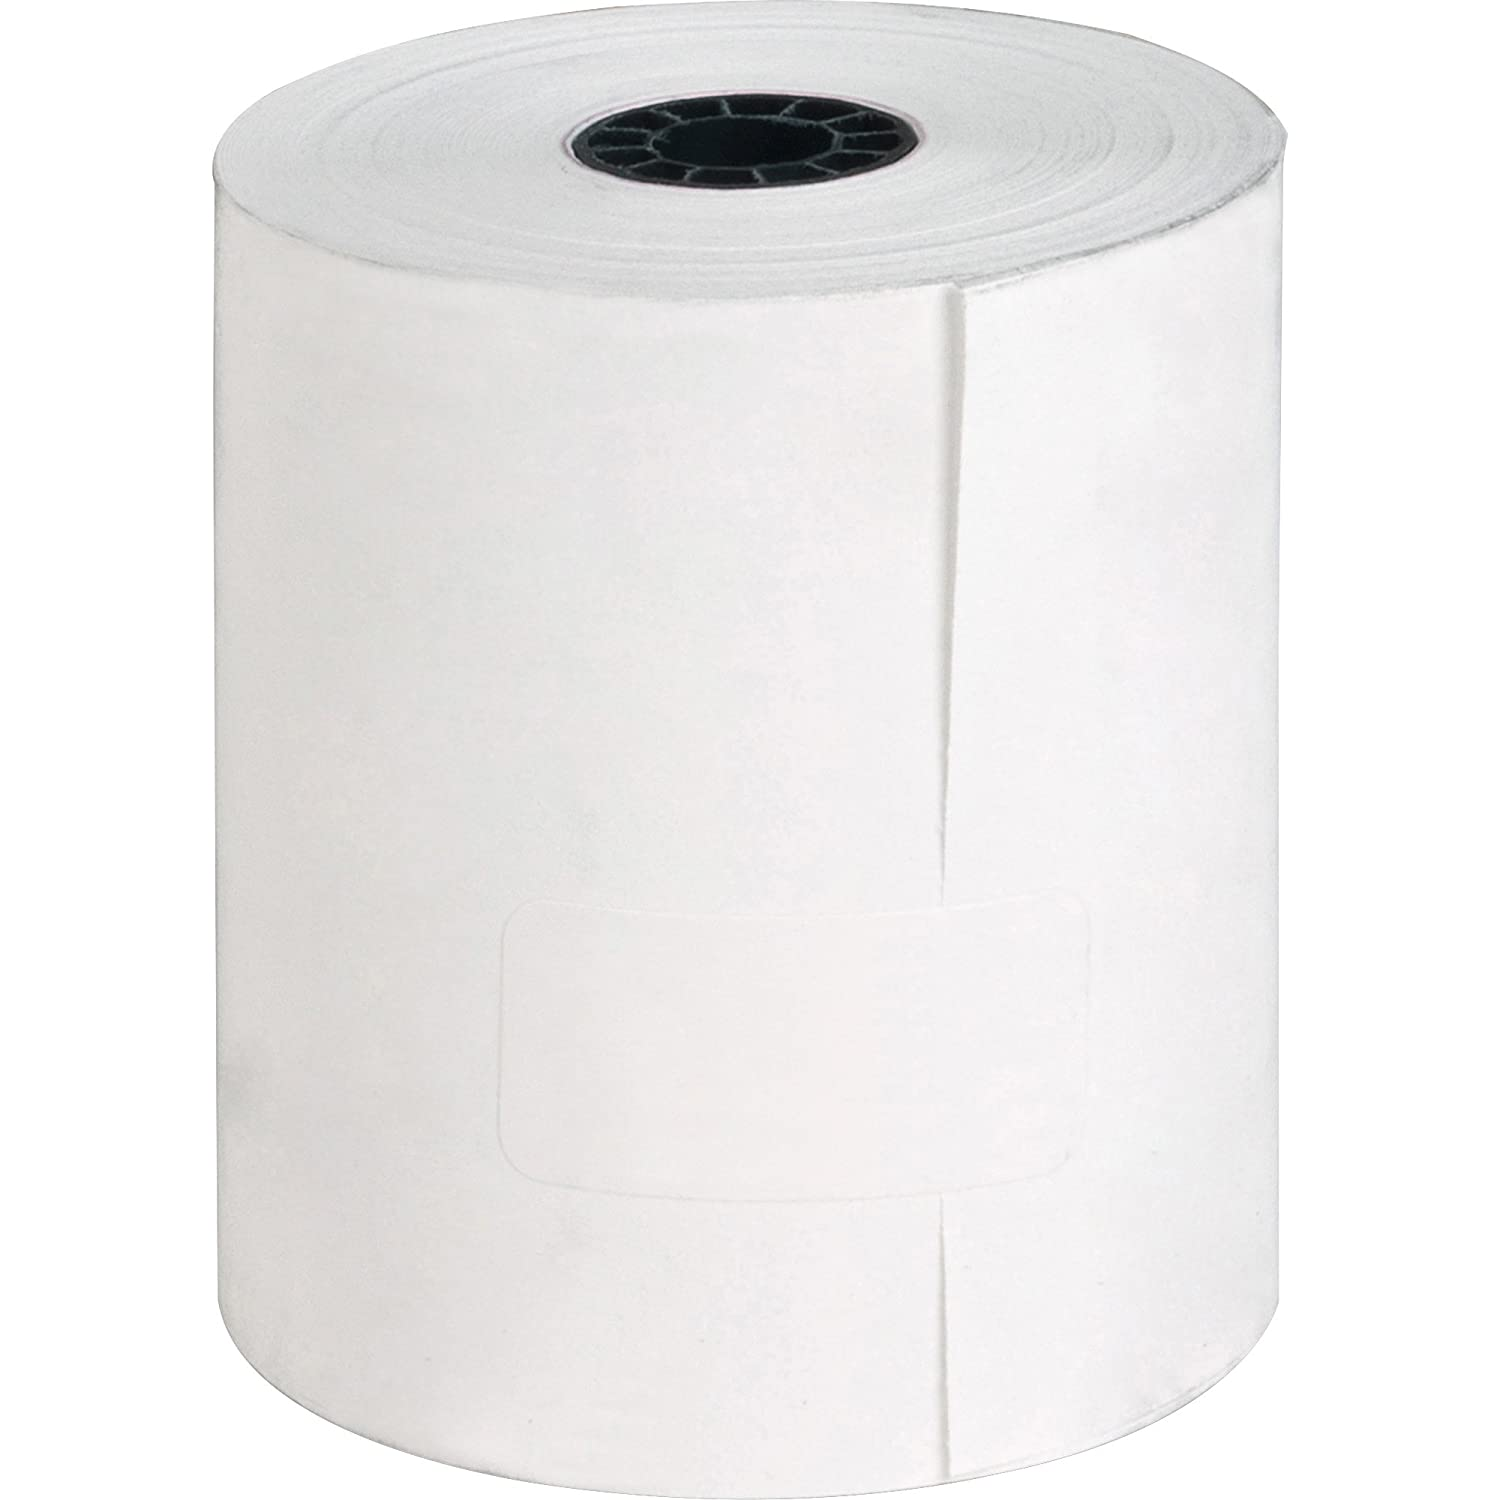 Sparco Thermal Paper Roll, 3-1/8 x 230-Feet, 50 Count, White (SPR25346) S.P. Richards Company